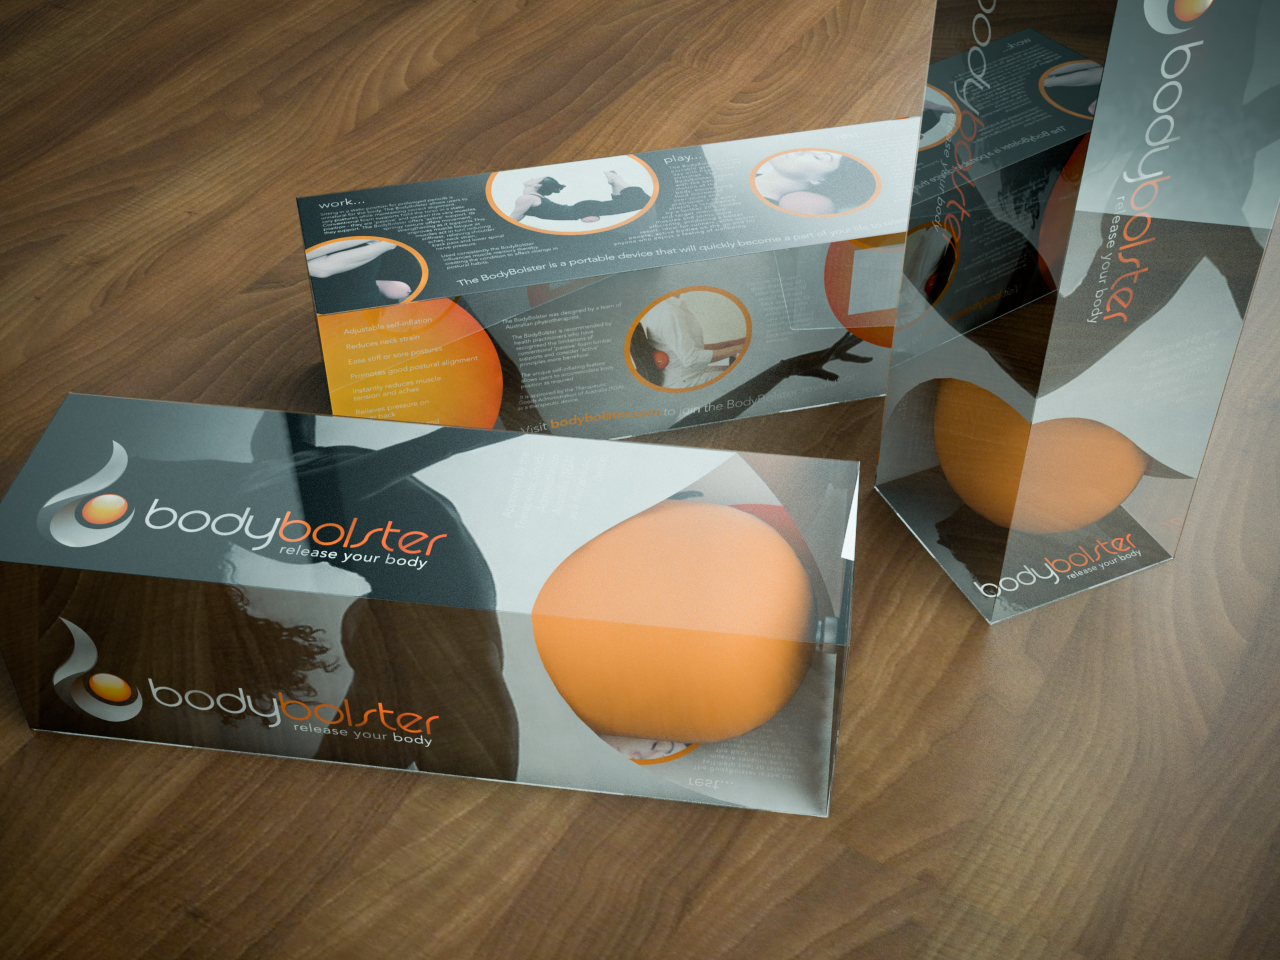 bodybolster packaging